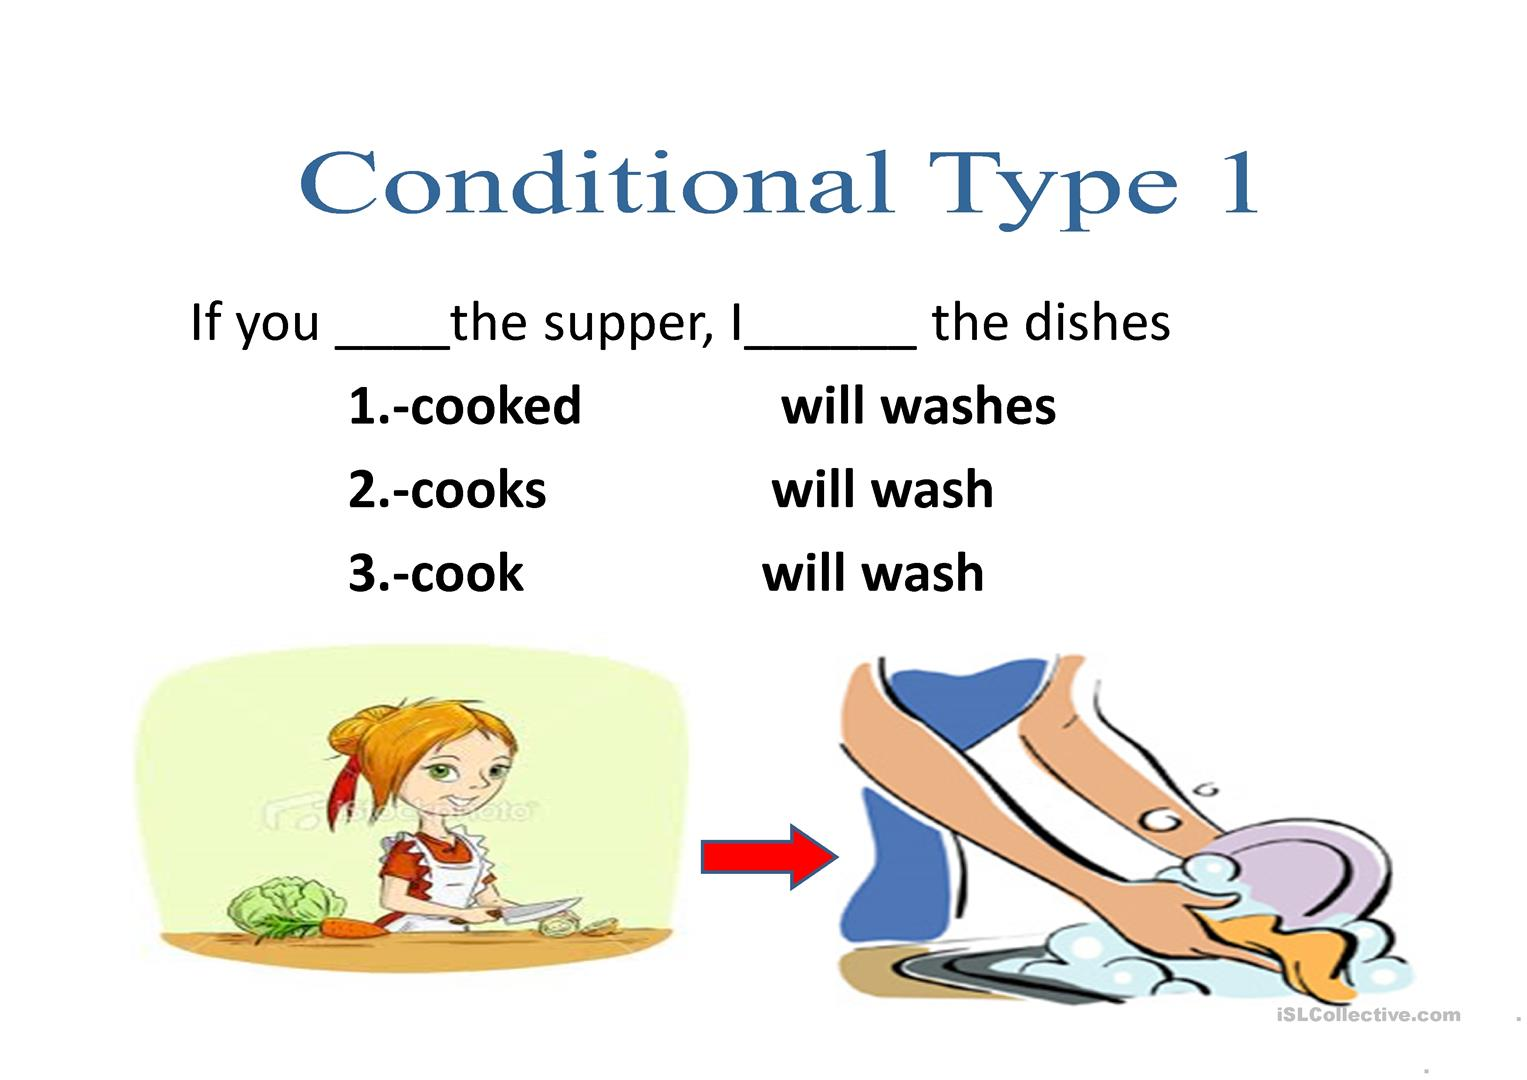 Conditionals 0 1 And 2 Worksheet